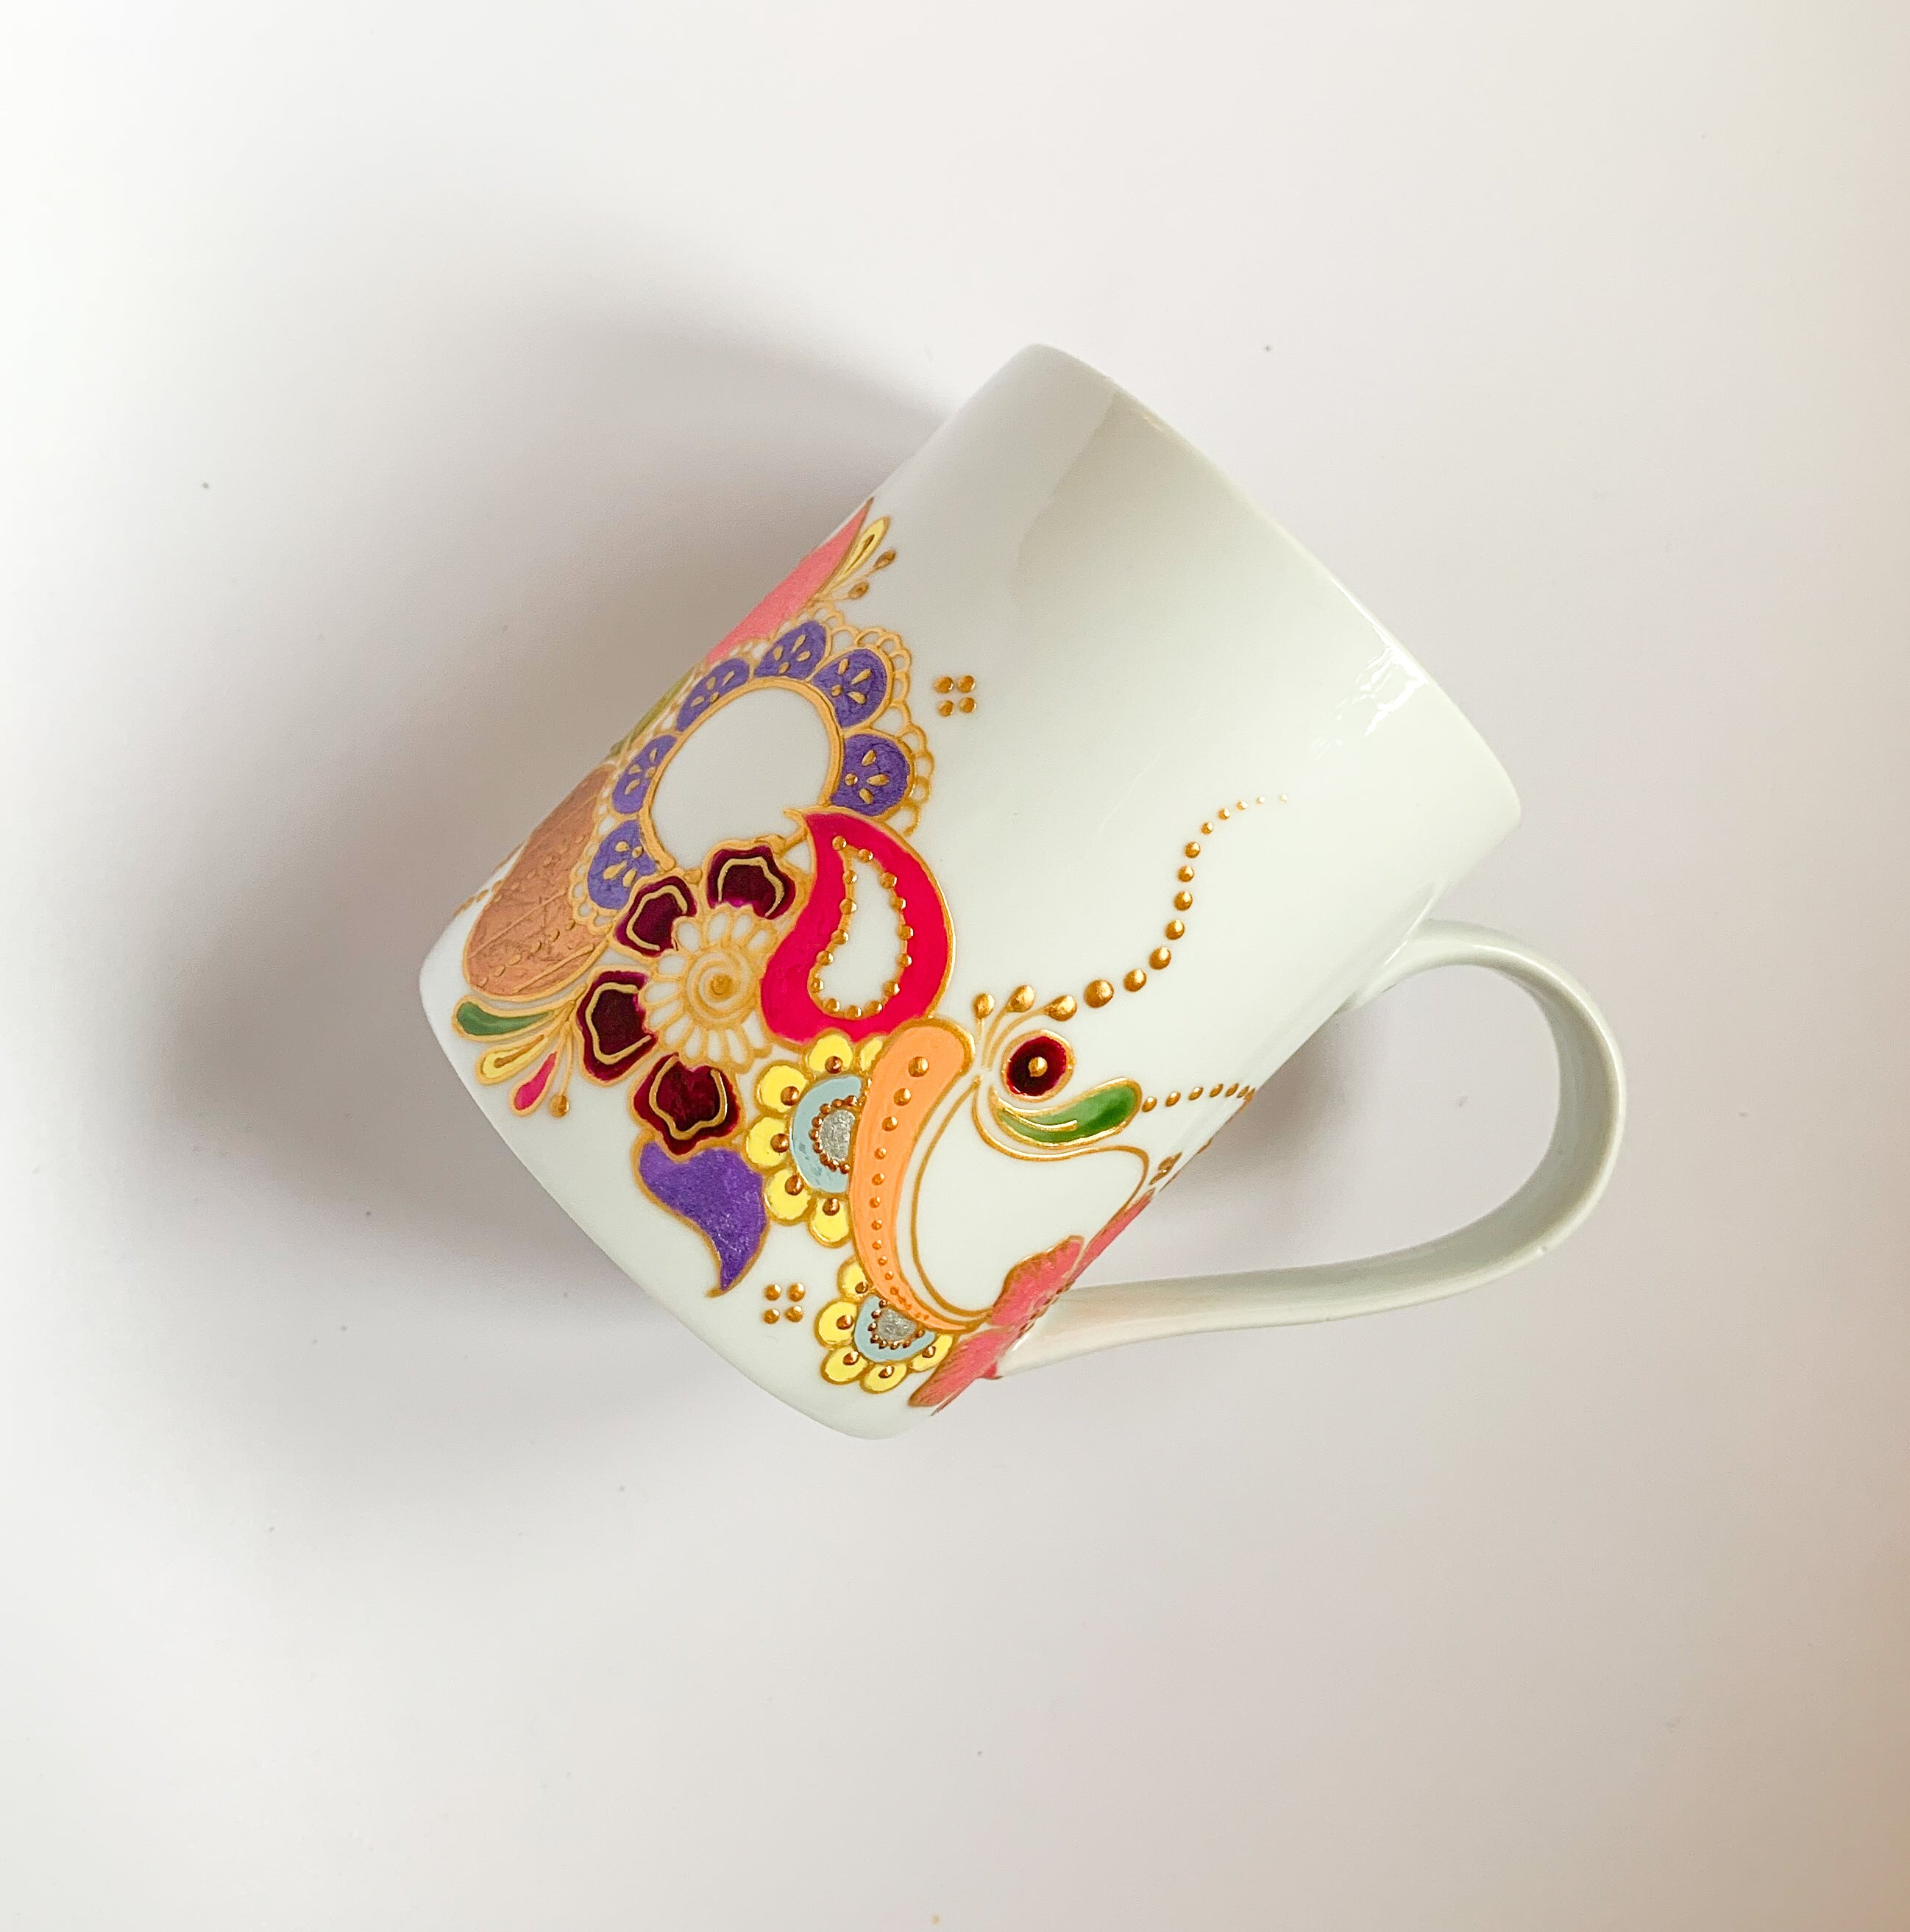 PASTEL RAINBOW Floral Coffee mug, white Mug, Handpainted Henna mug with vibrant color - 12oz